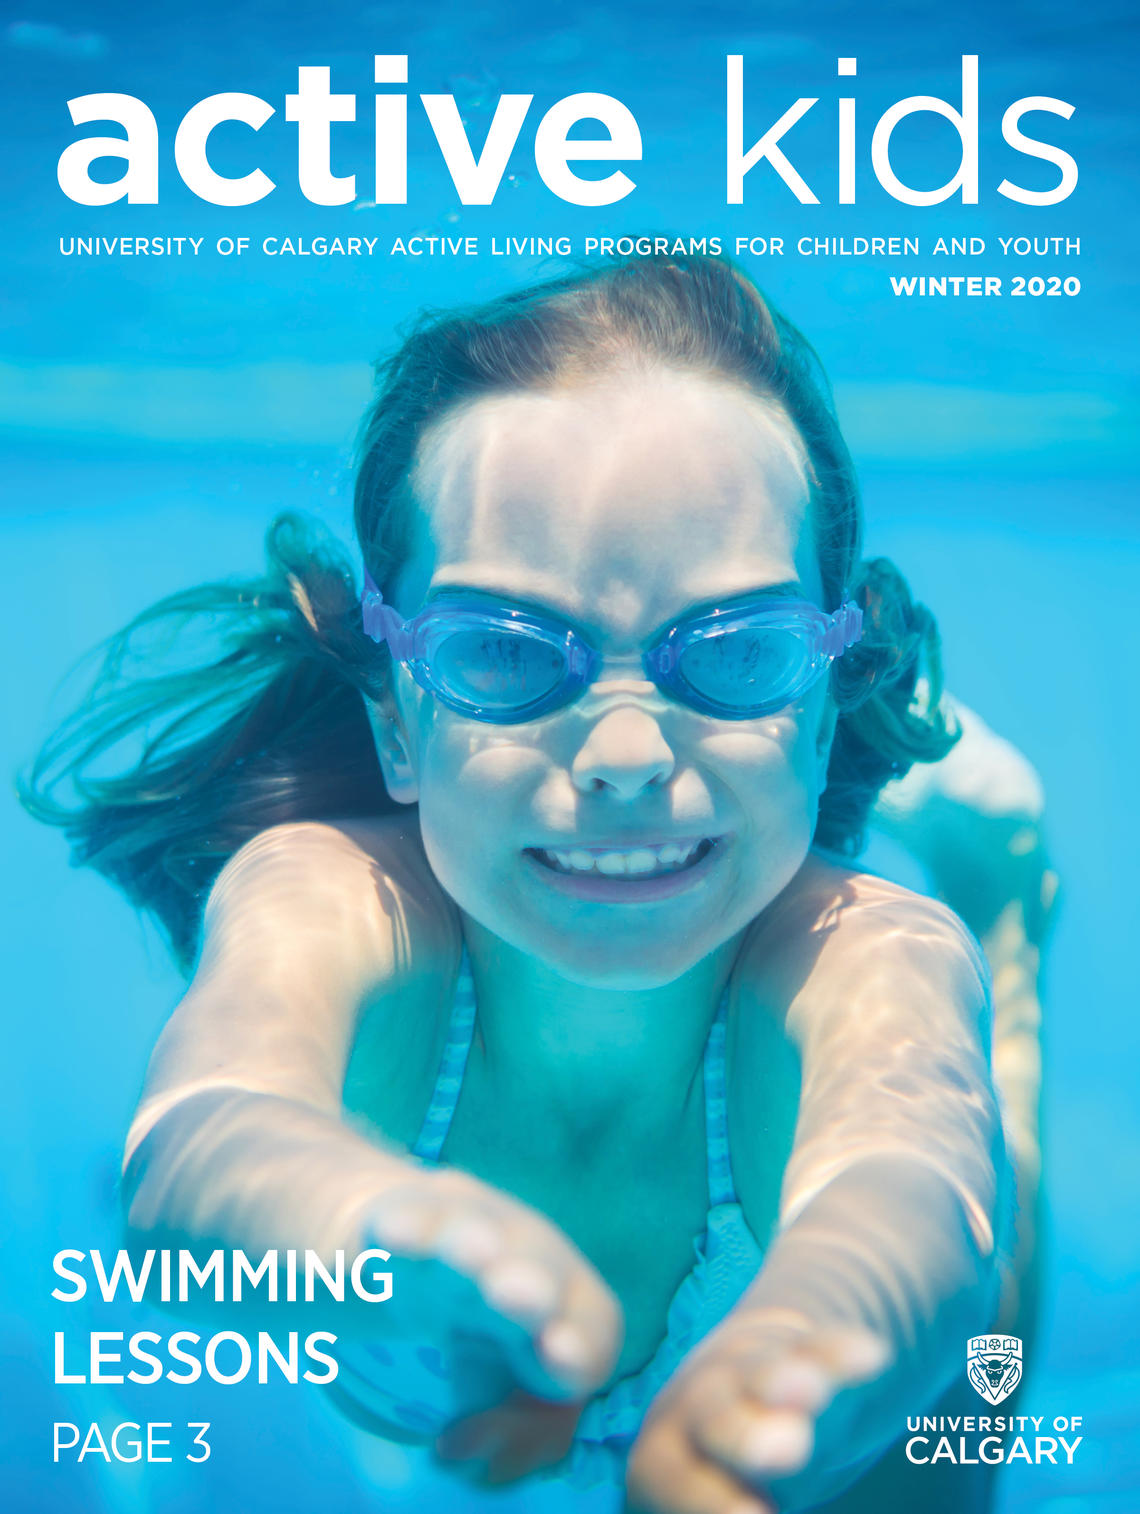 Active Kids guide Winter 2020